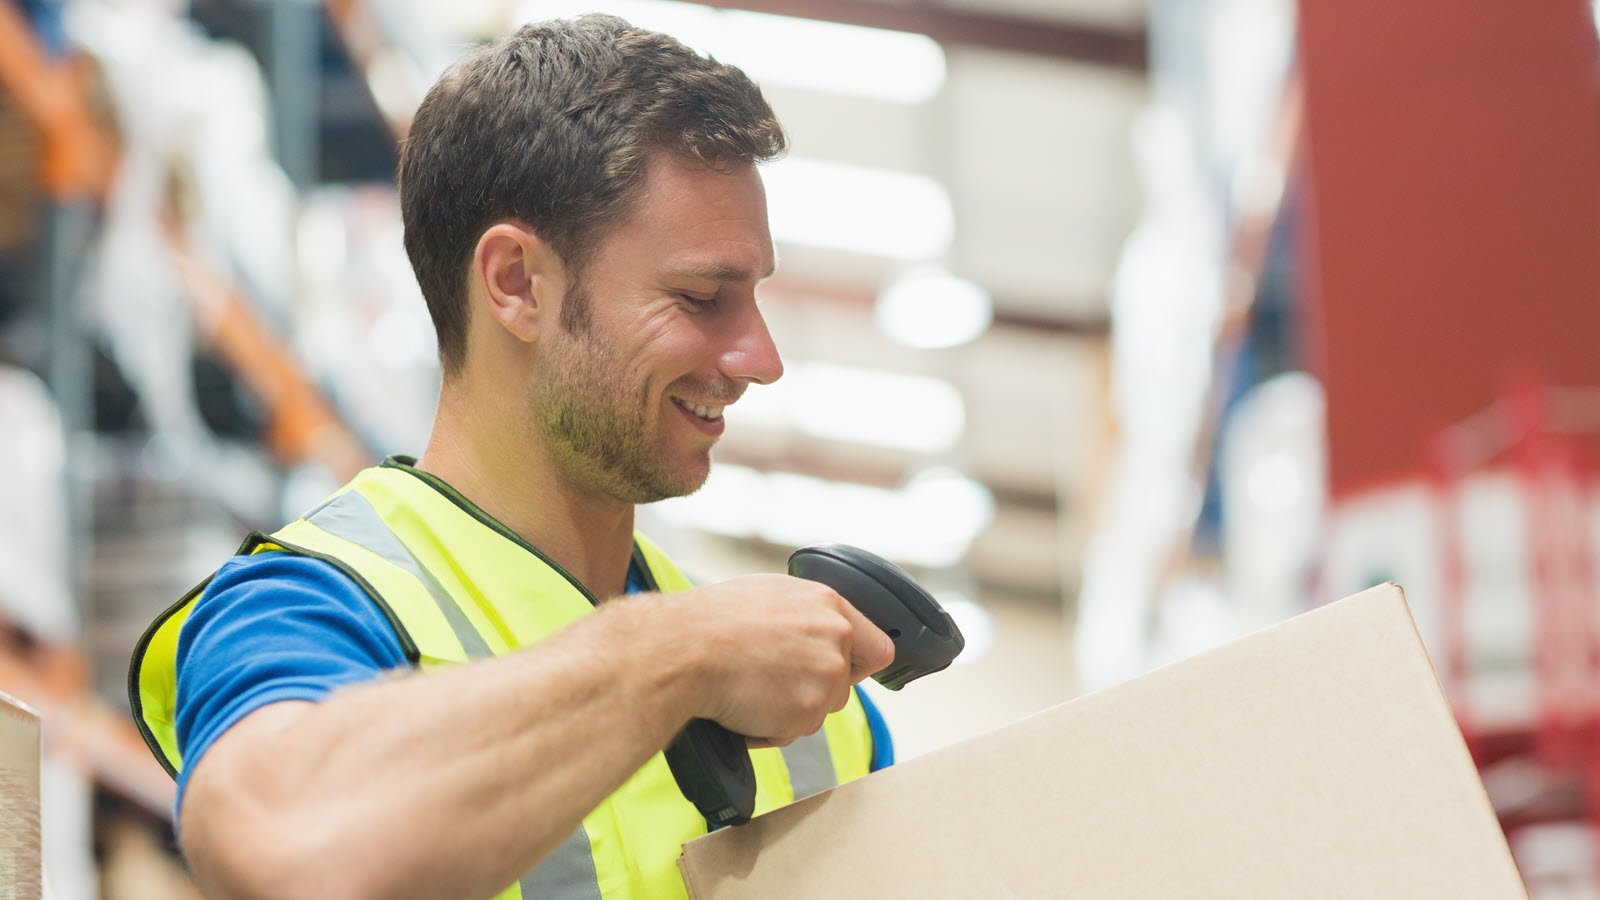 Smiling manual worker scanning package